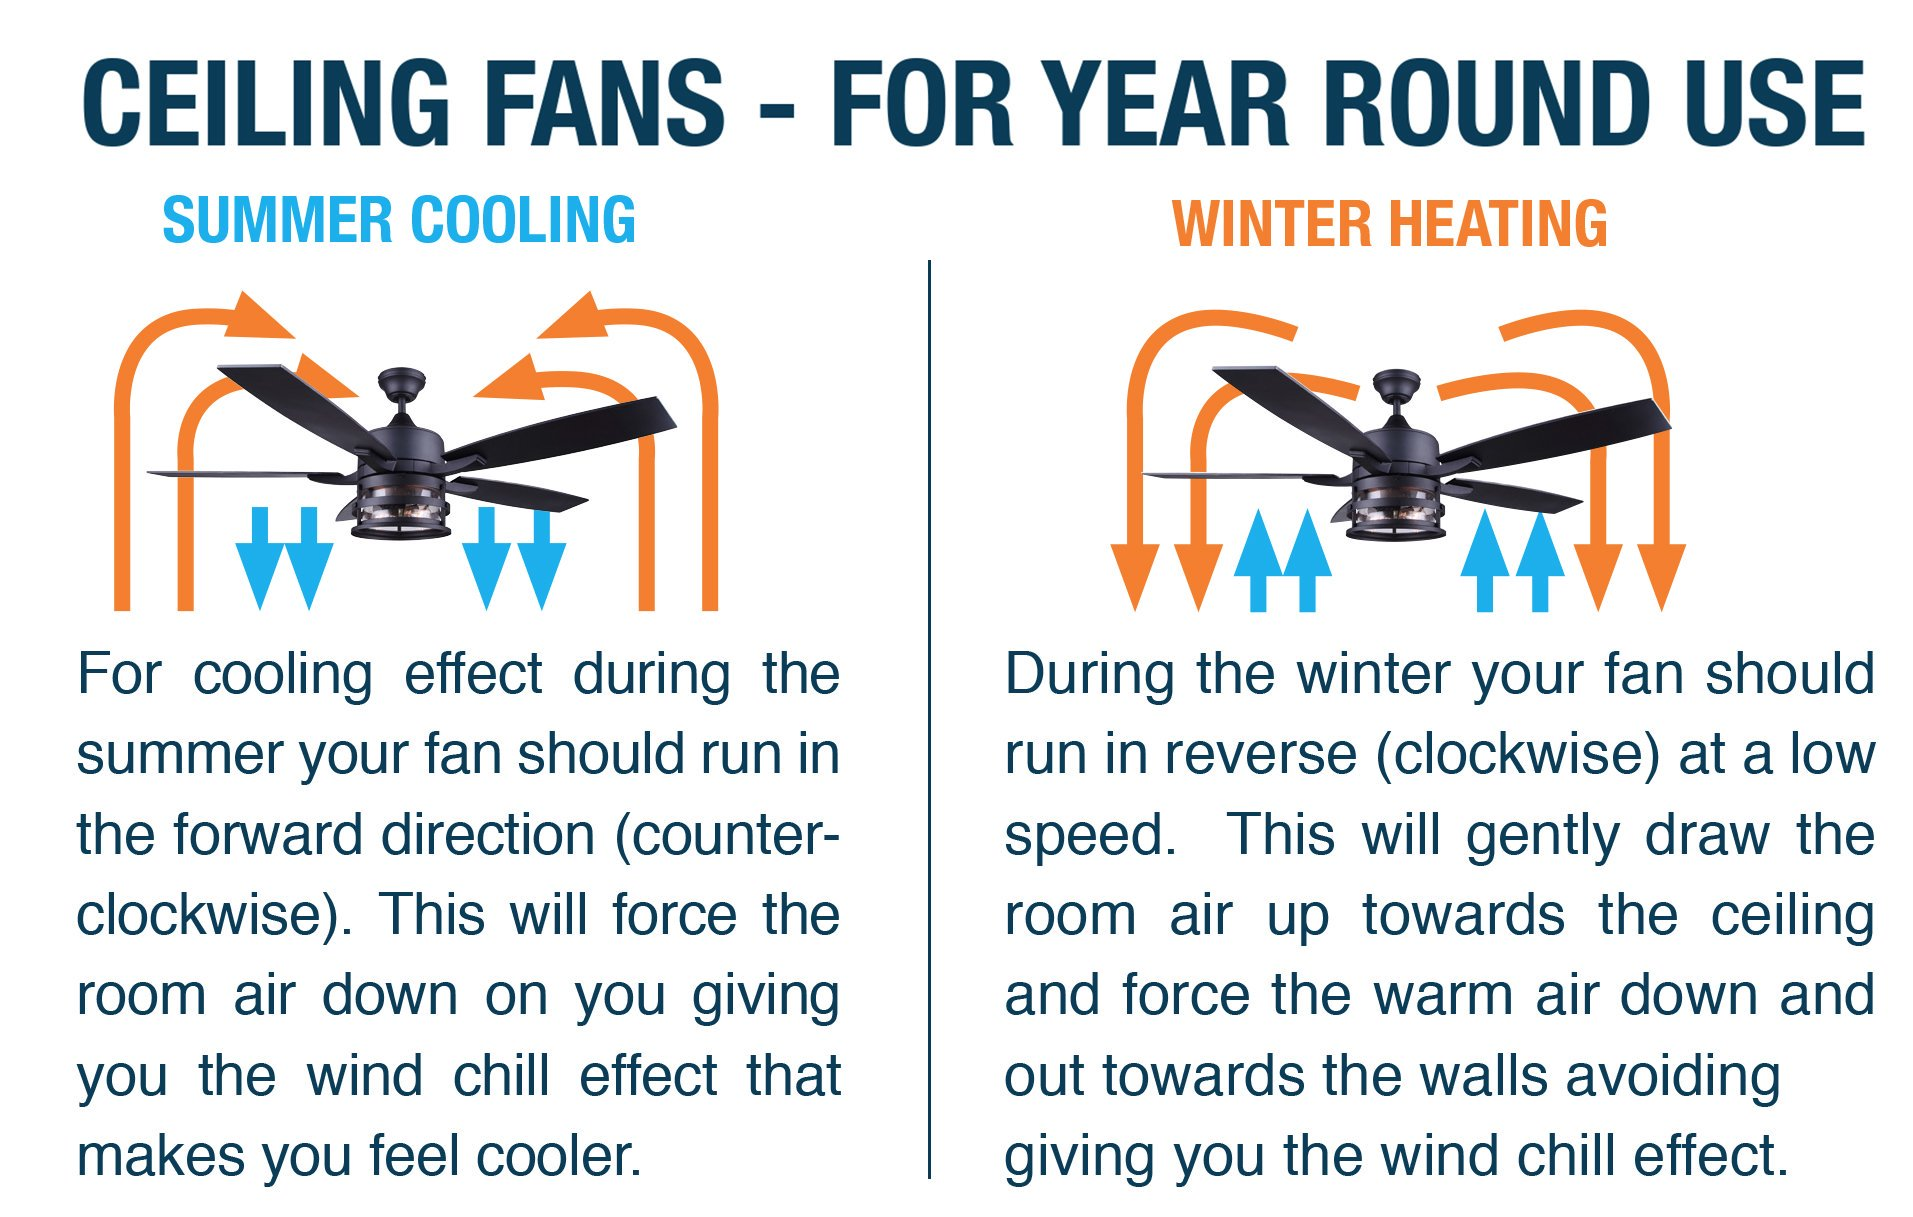 Canarm Hvac On Twitter For Maximum Cooling From Your Ceiling Fan During The Hot Summer Months Make Sure It Is Running In The Forward Direction Counter Clockwise Reverse This For The Winter Tiptuesday